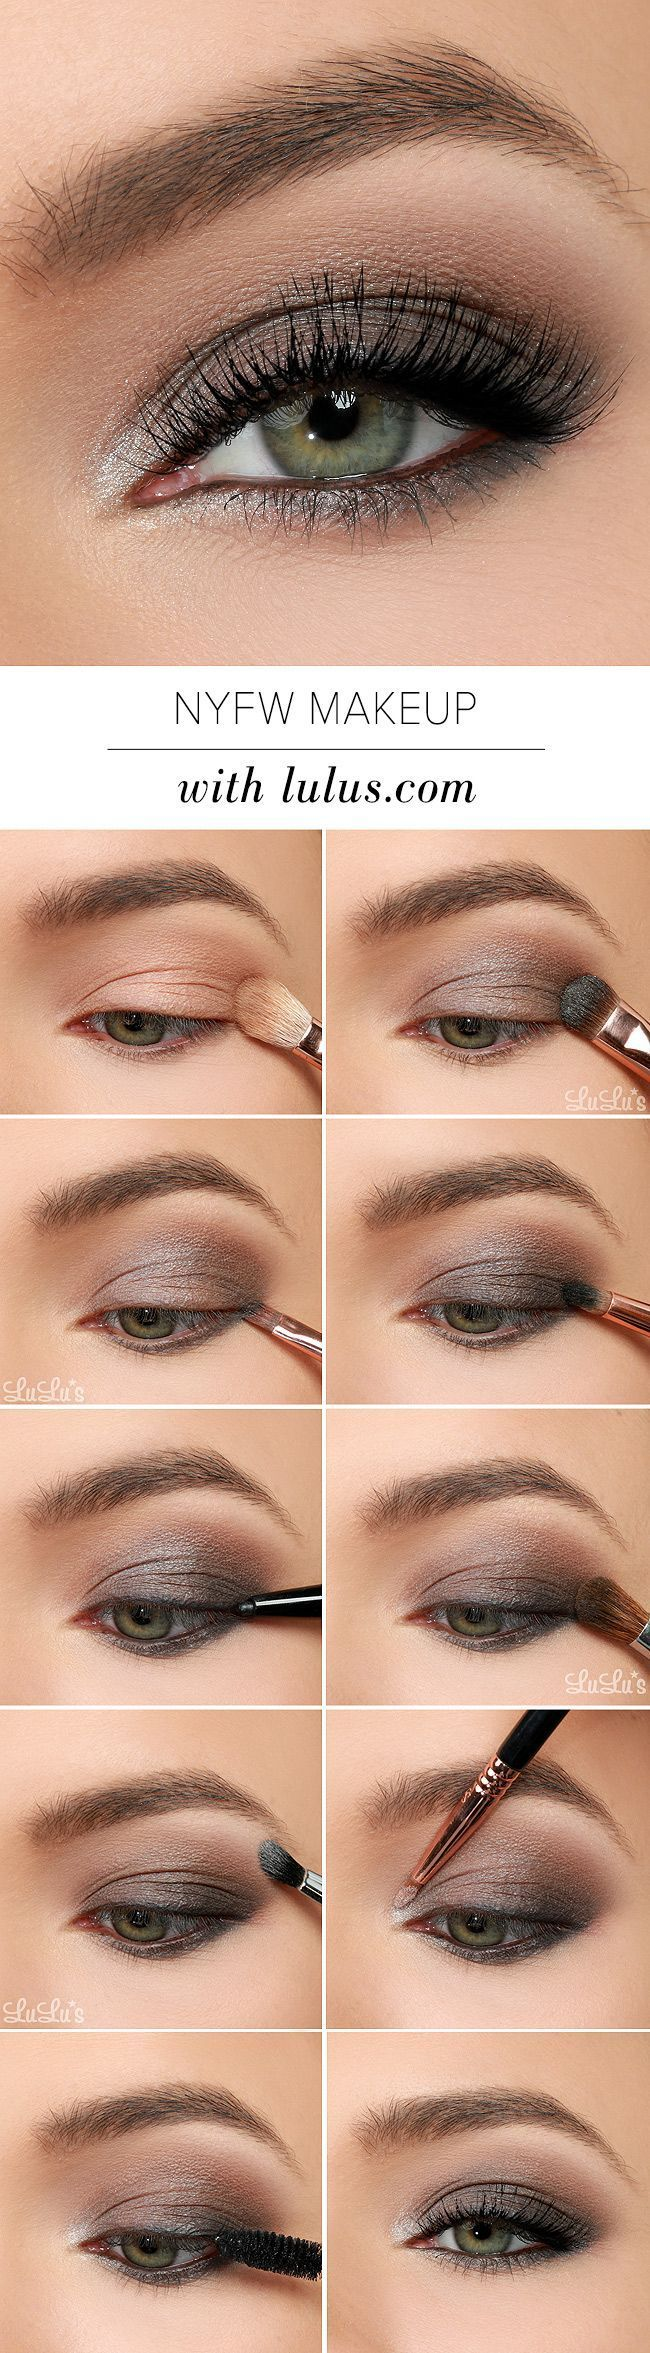 This NYFW-inspired eye makeup tutorial uses gray, black, and metallic silver eye...